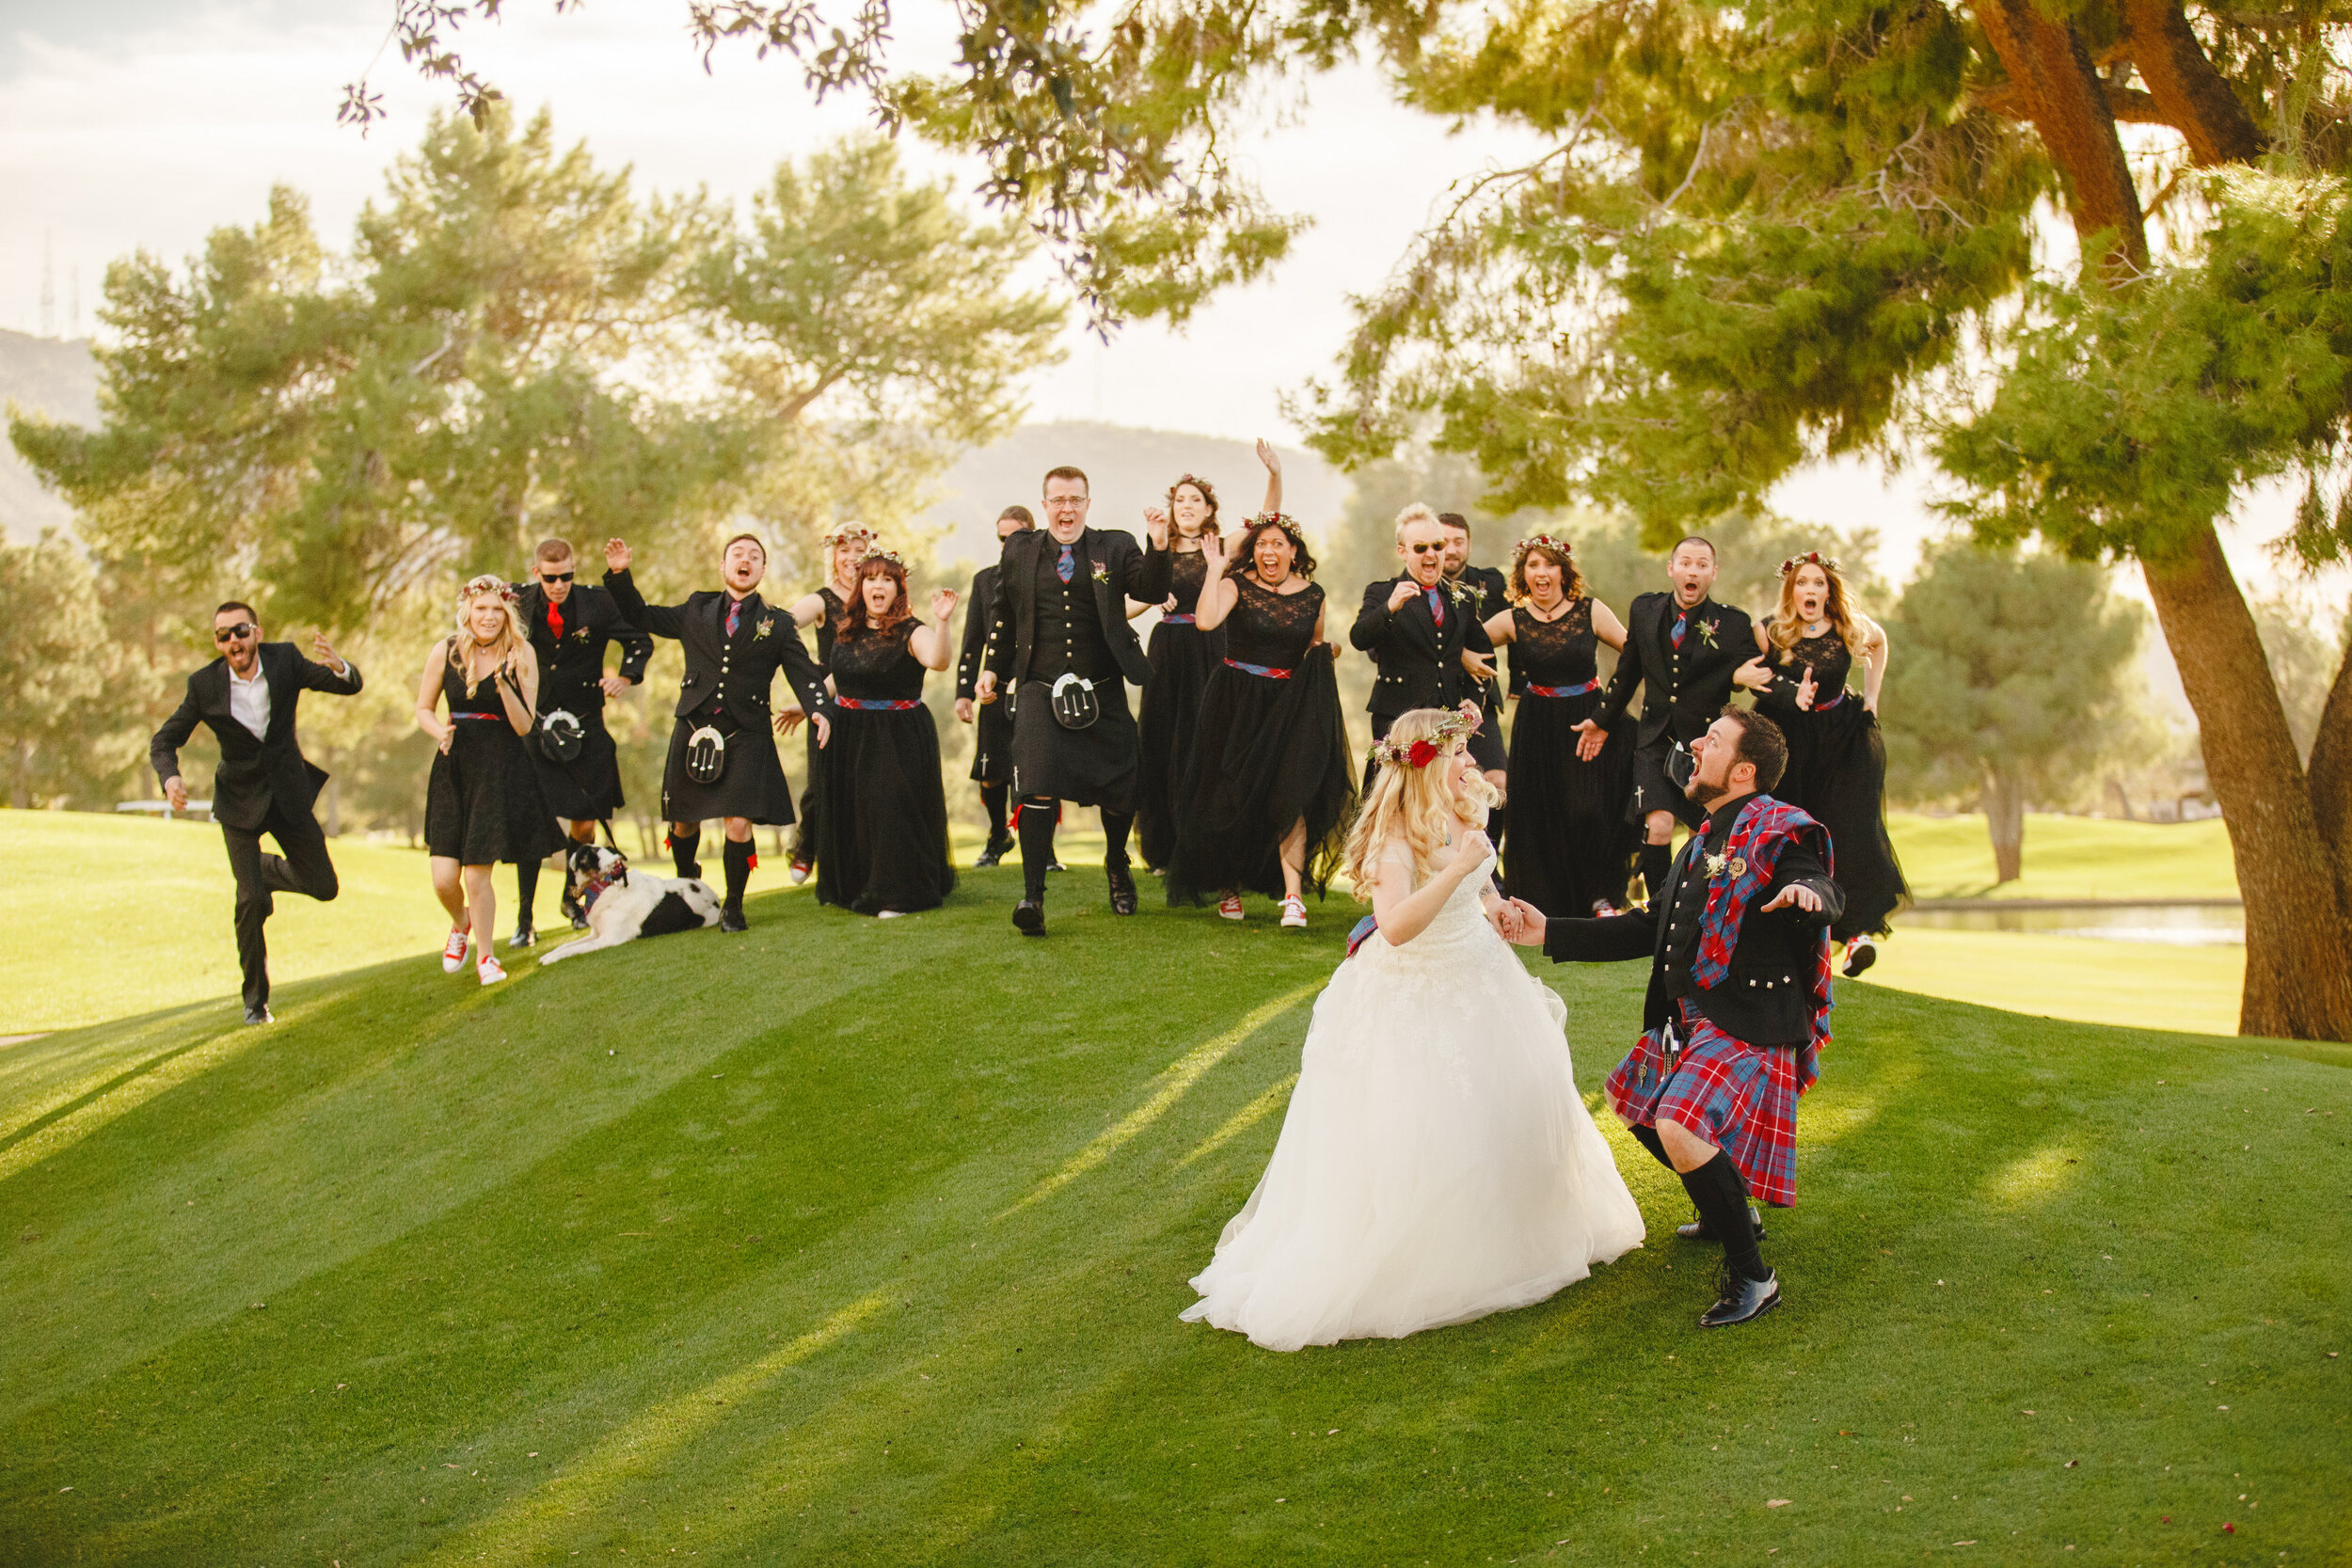 Bride and groom Scottish cultural themed alternative wedding with bridesmaids and groomsmen in black outfits.jpg